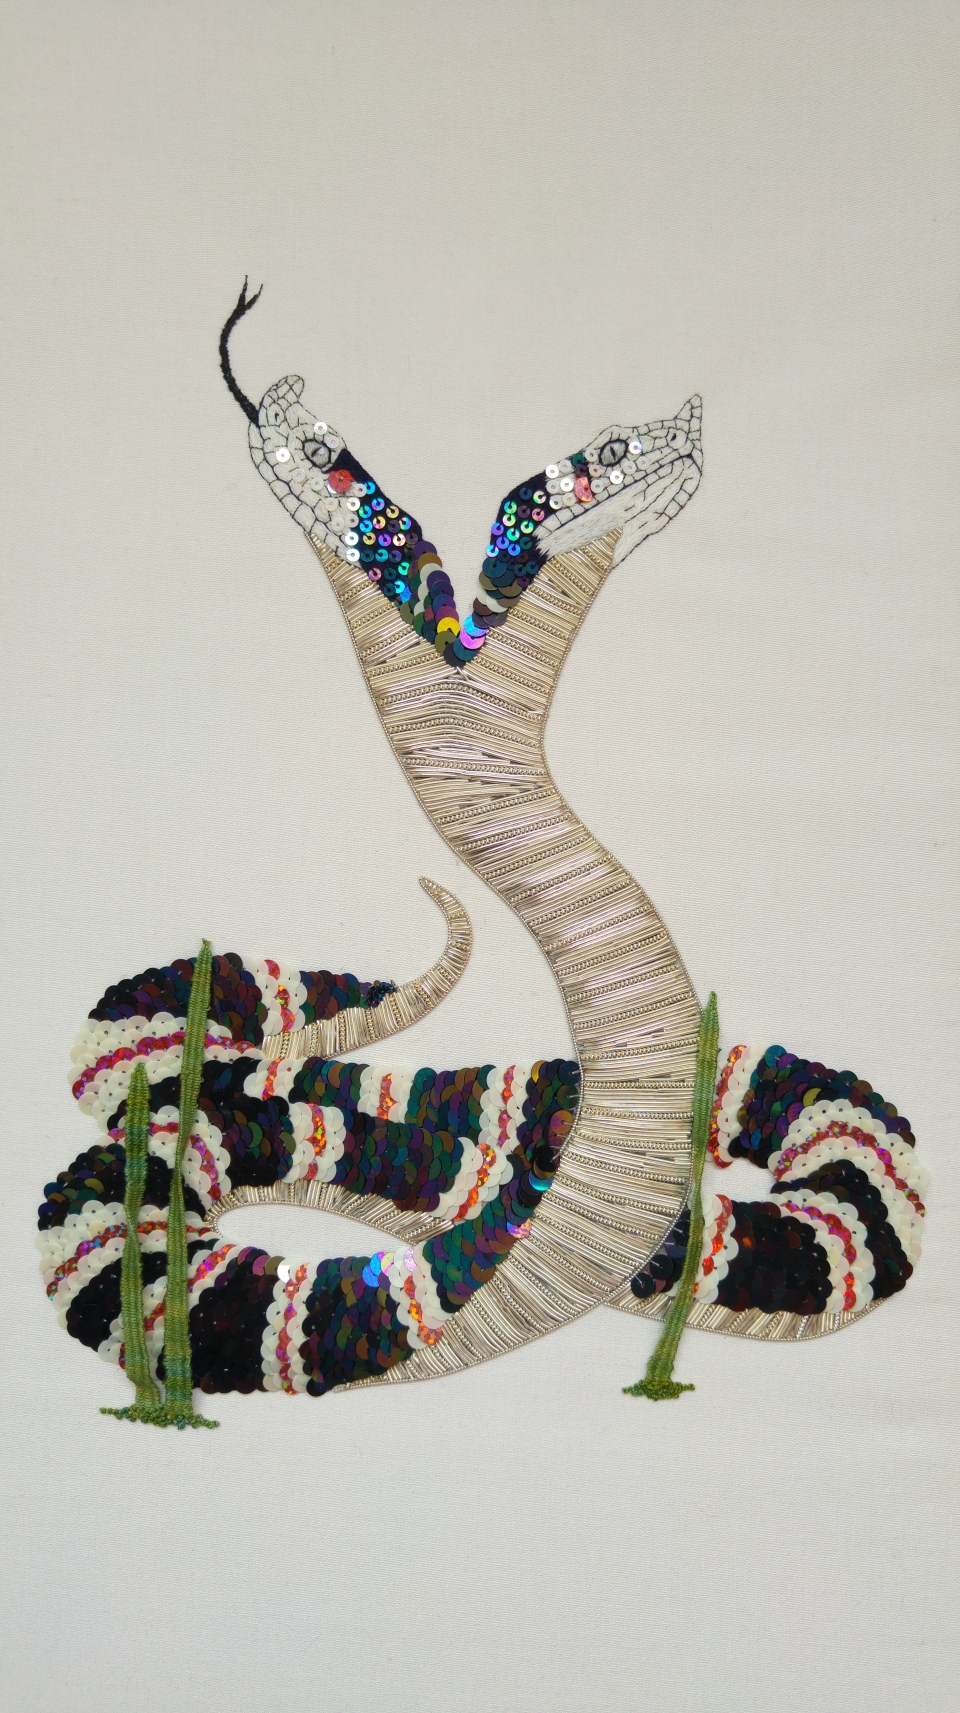 metal thread work embroidery snake